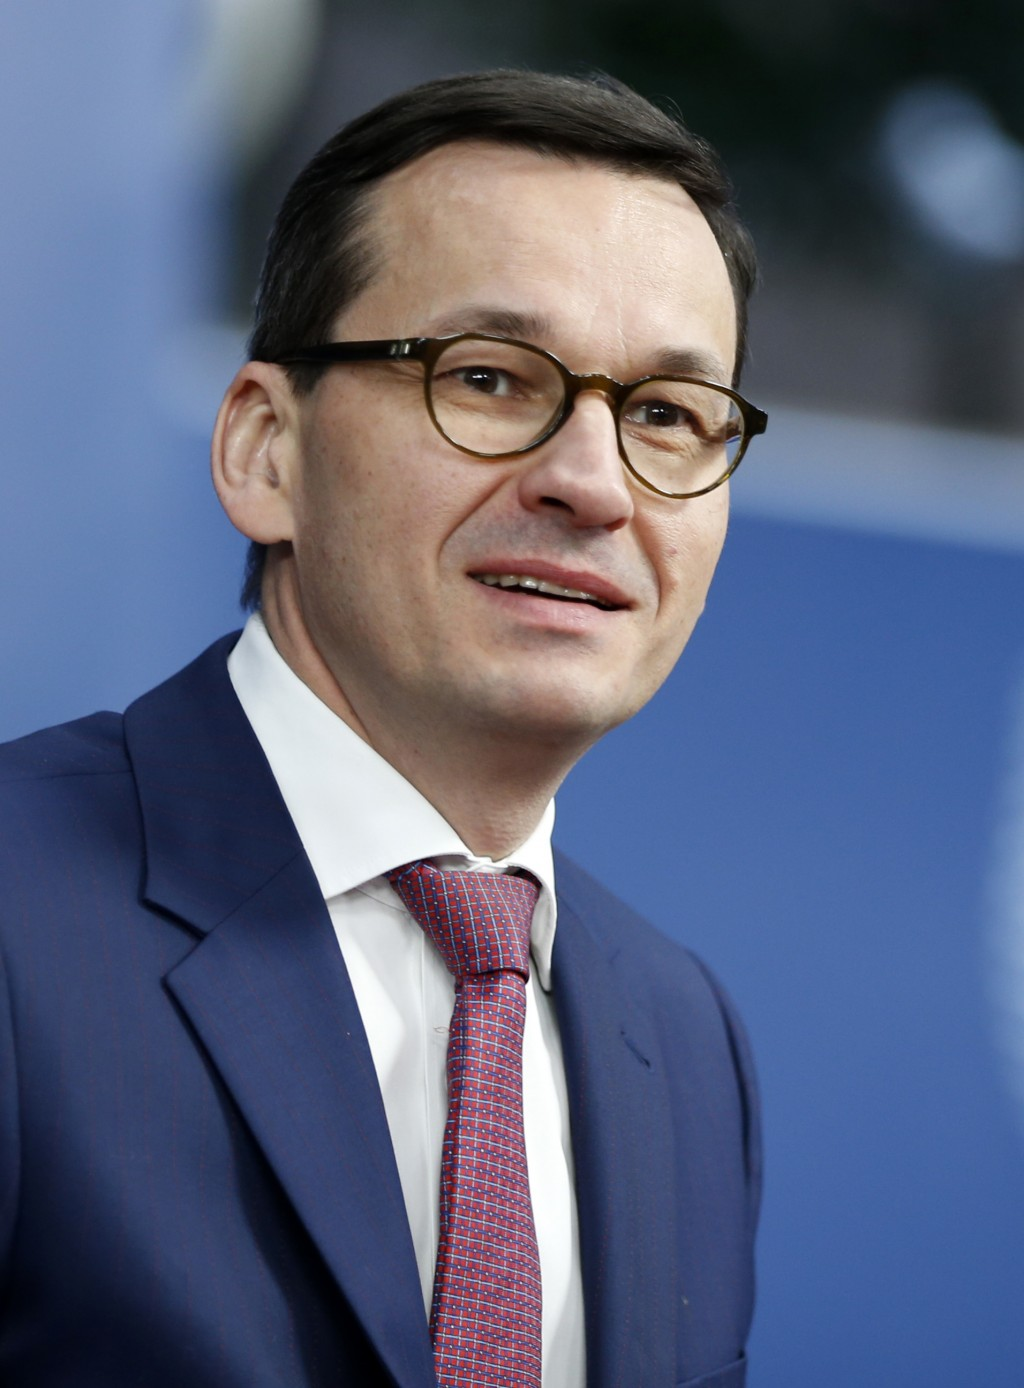 Polish Prime Minister Mateusz Morawiecki arrives for an EU summit at the Europa building in Brussels on Thursday, Dec. 14, 2017. European Union leader...